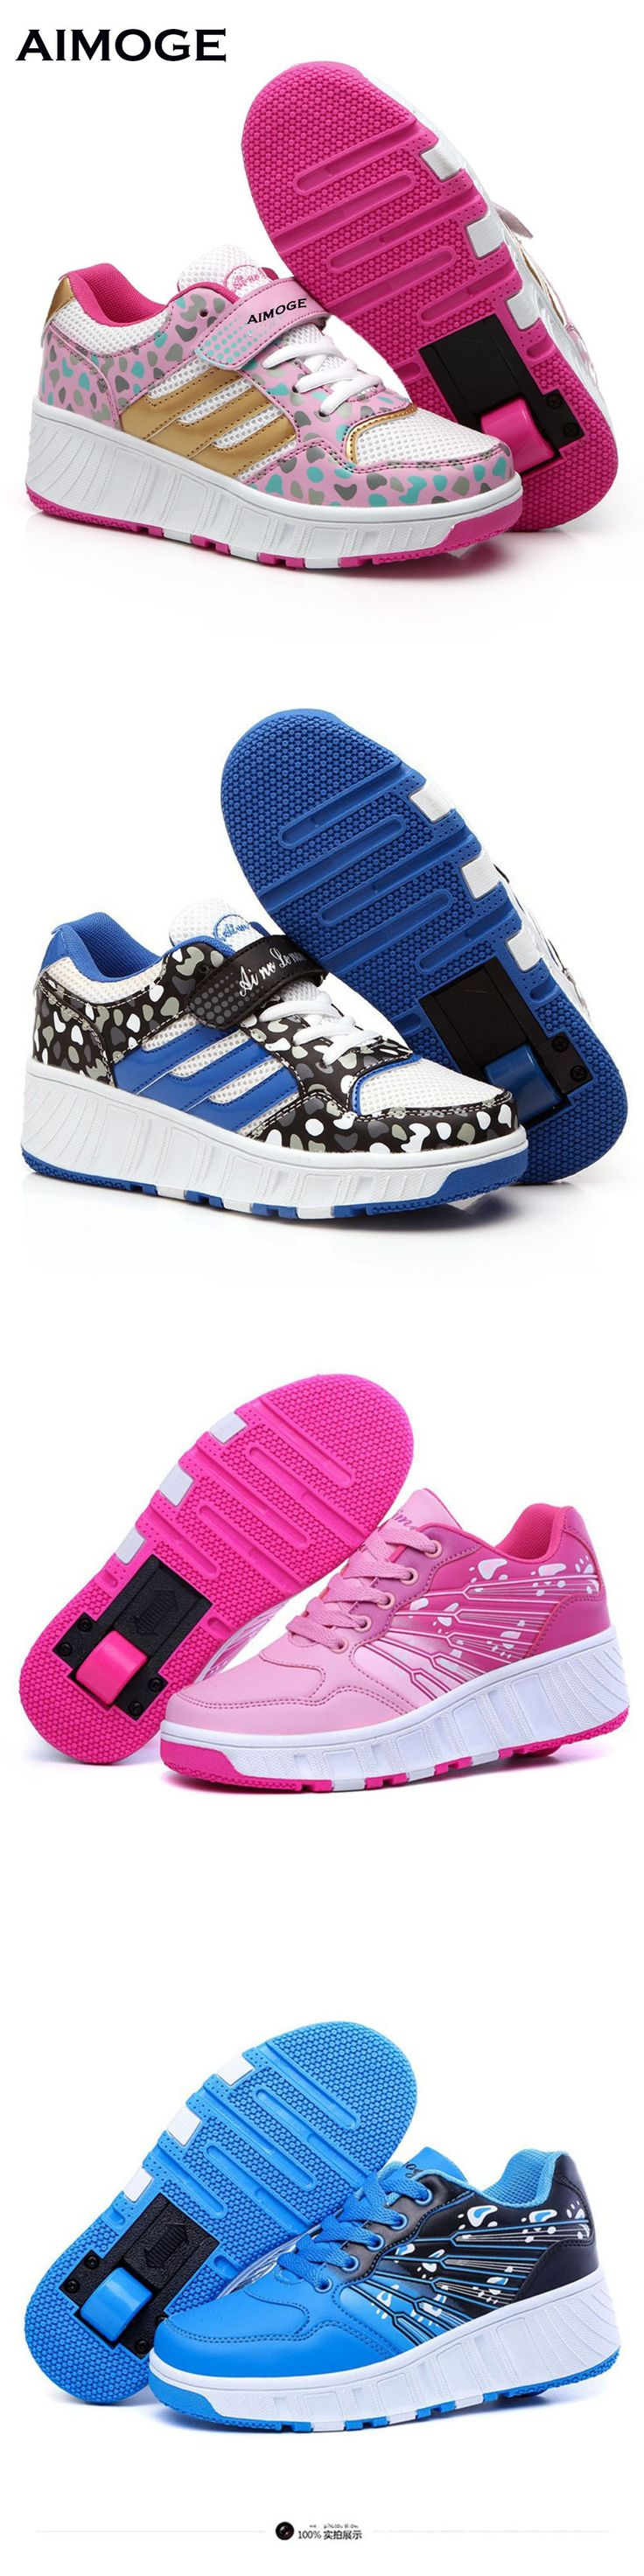 New 2016 Child shoes Summer Style Breathable WHEELYS Roller Skate Shoes For Girls Kids Boys Sneakers With one Wheels Pink Blue $49.98